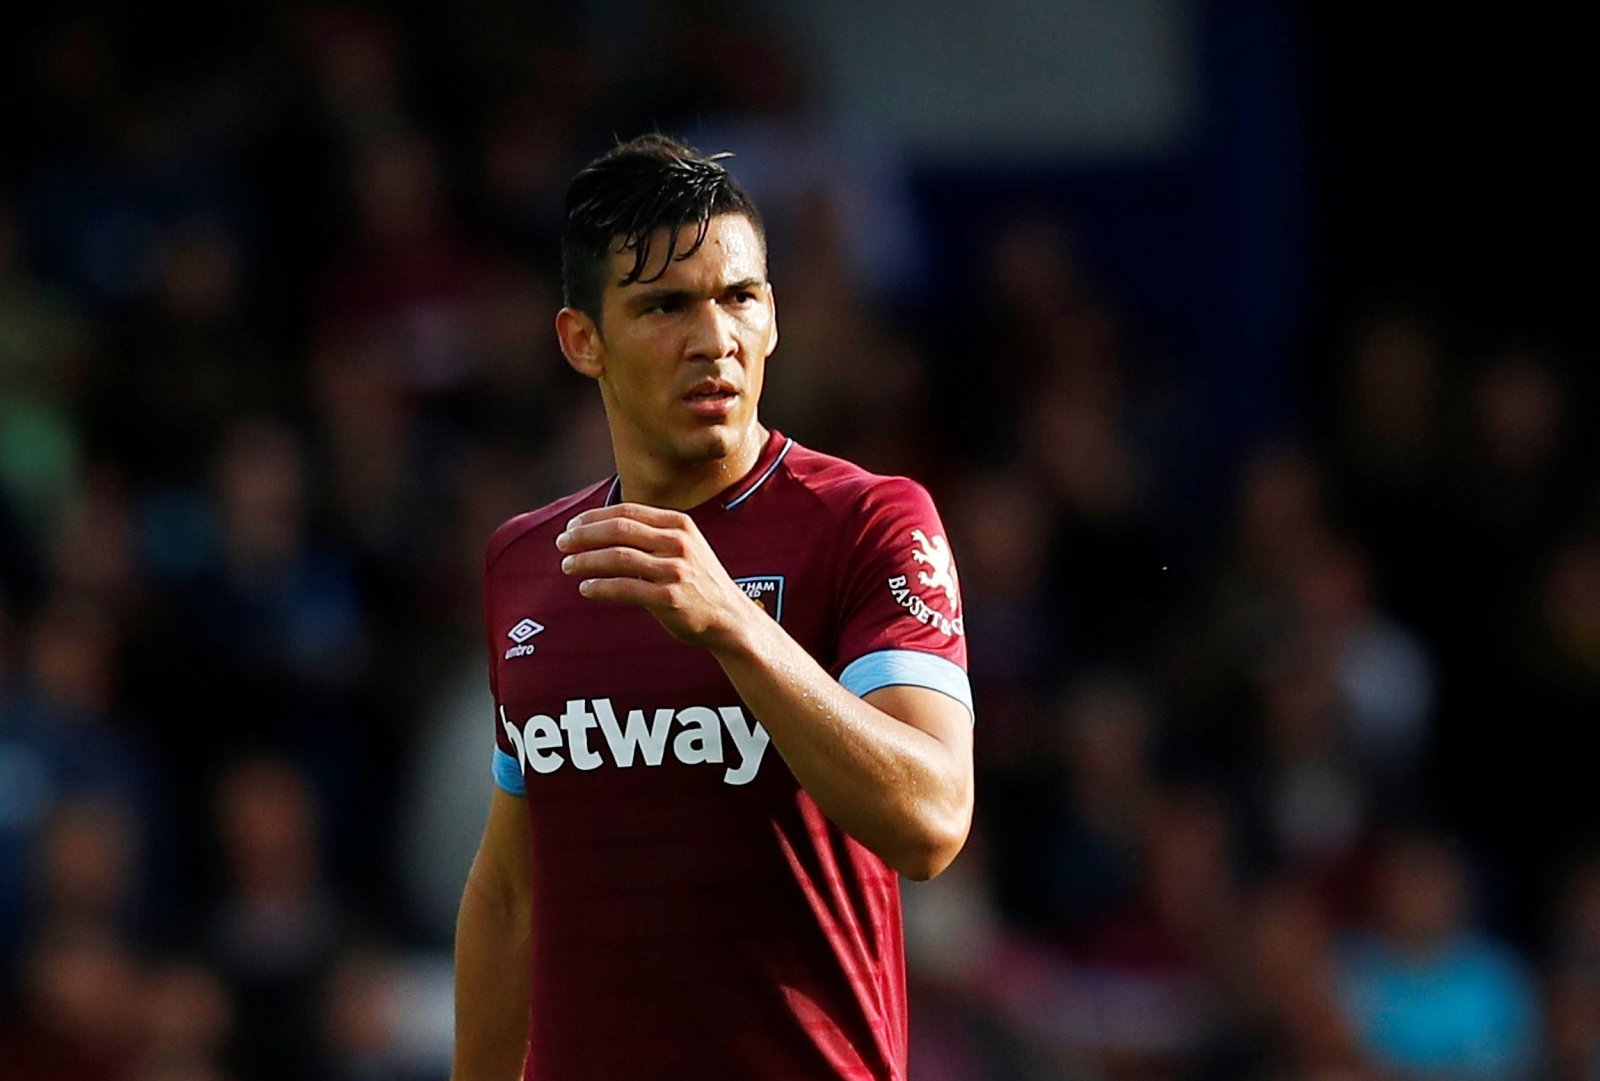 West Ham fans take to Twitter to show their appreciation for Fabian Balbuena